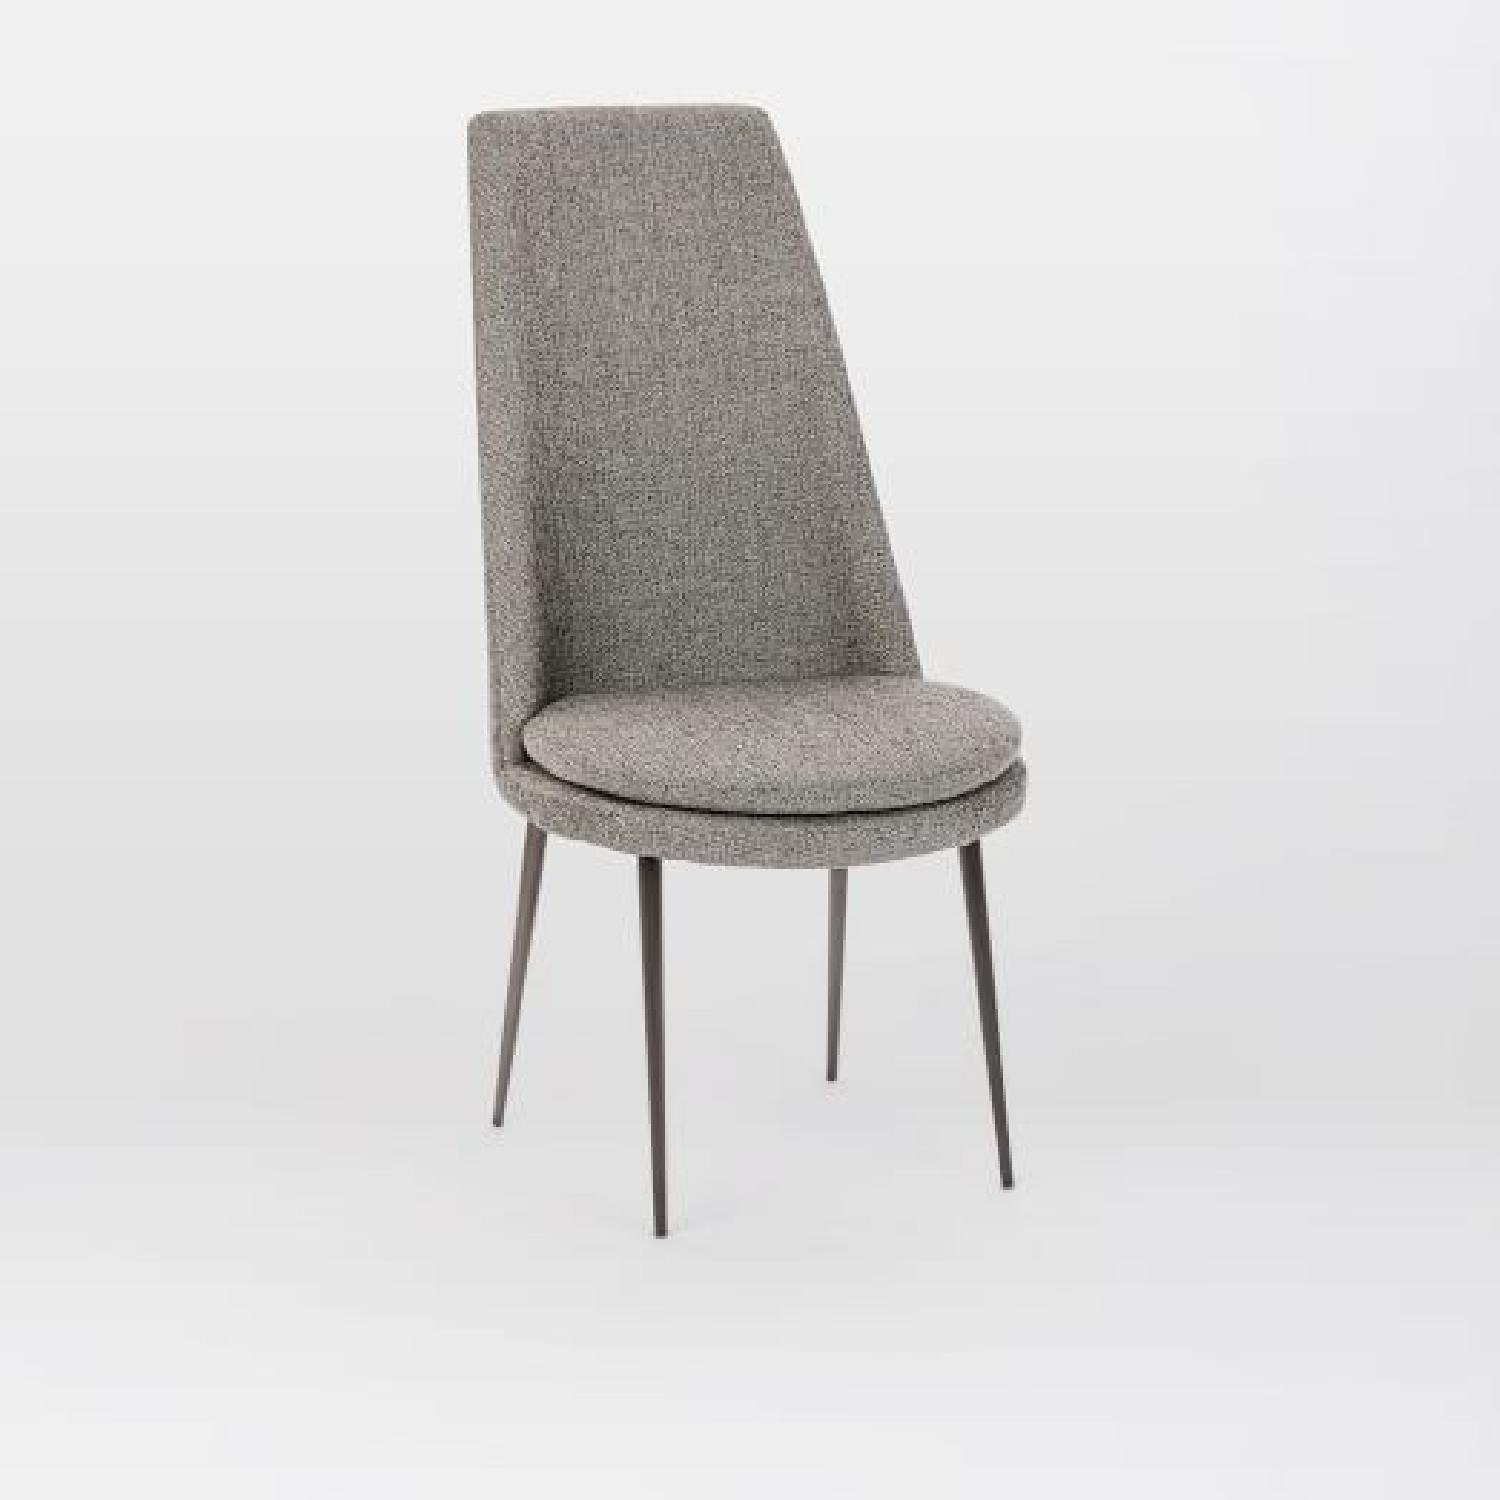 West Elm Finley High-Back Upholstered Dining Chair-2